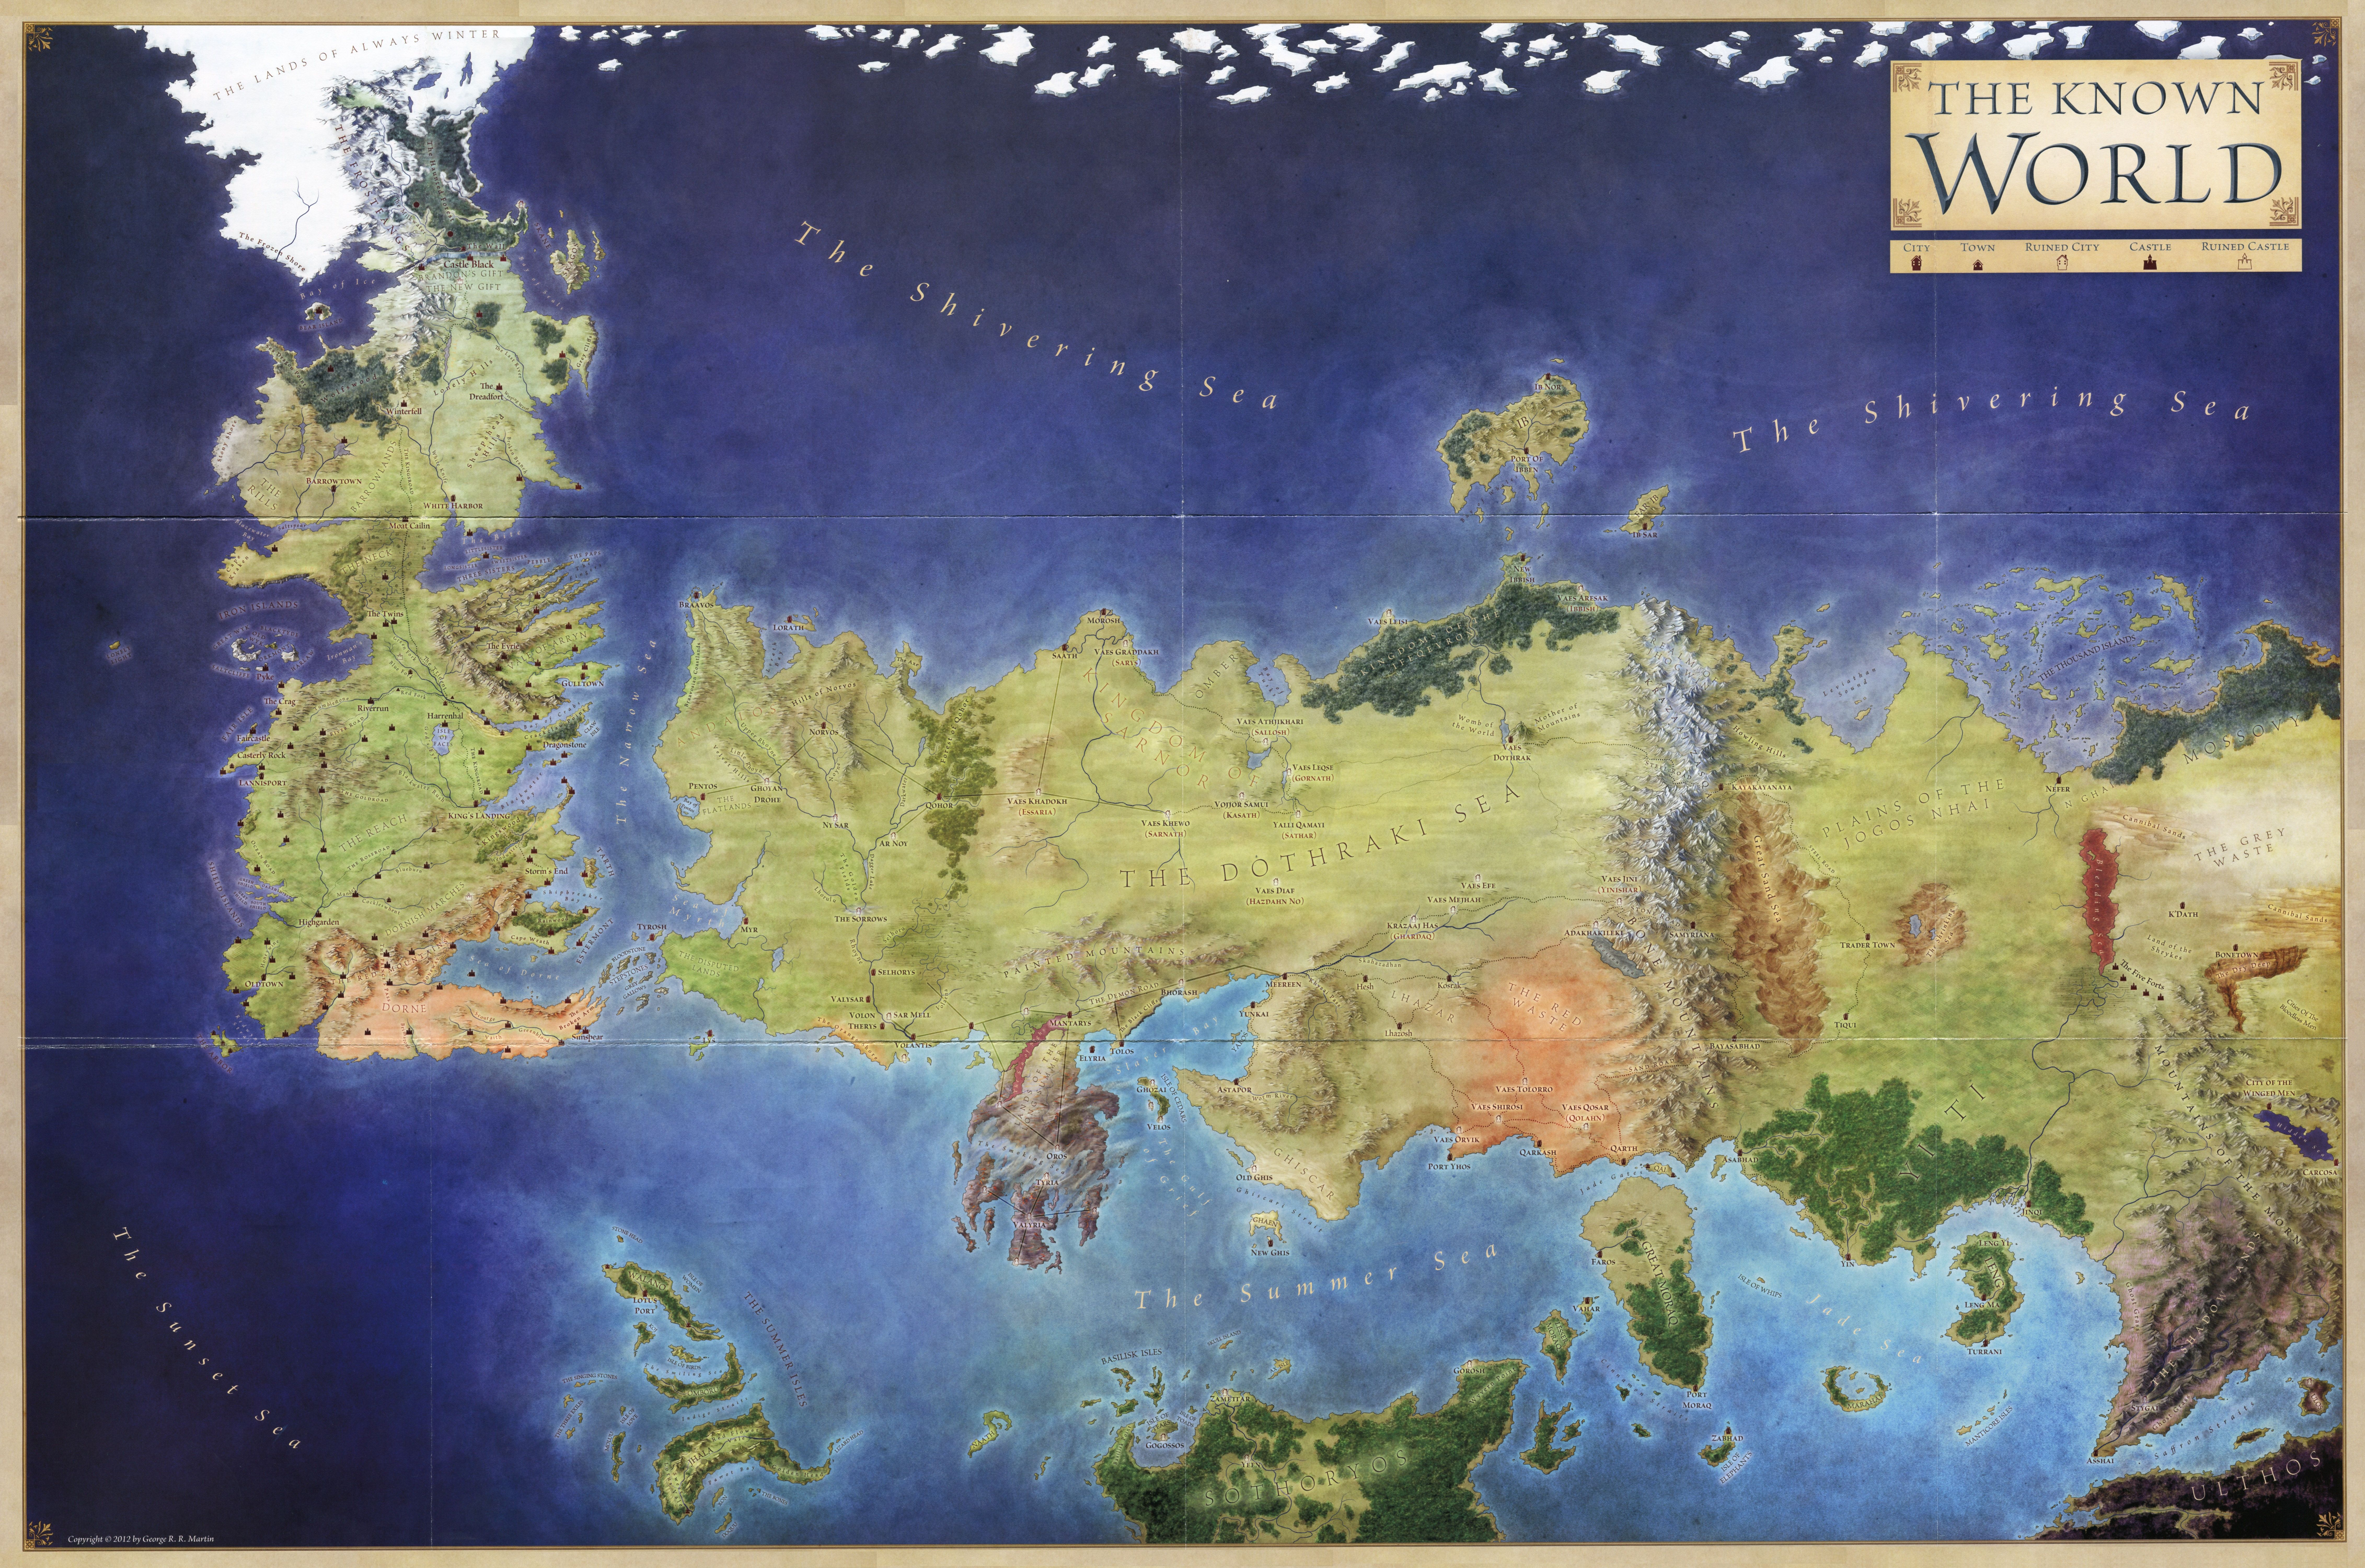 game of thrones weltkarte Game of Thrones map   Maps & Data in 2018   Pinterest   Game of  game of thrones weltkarte